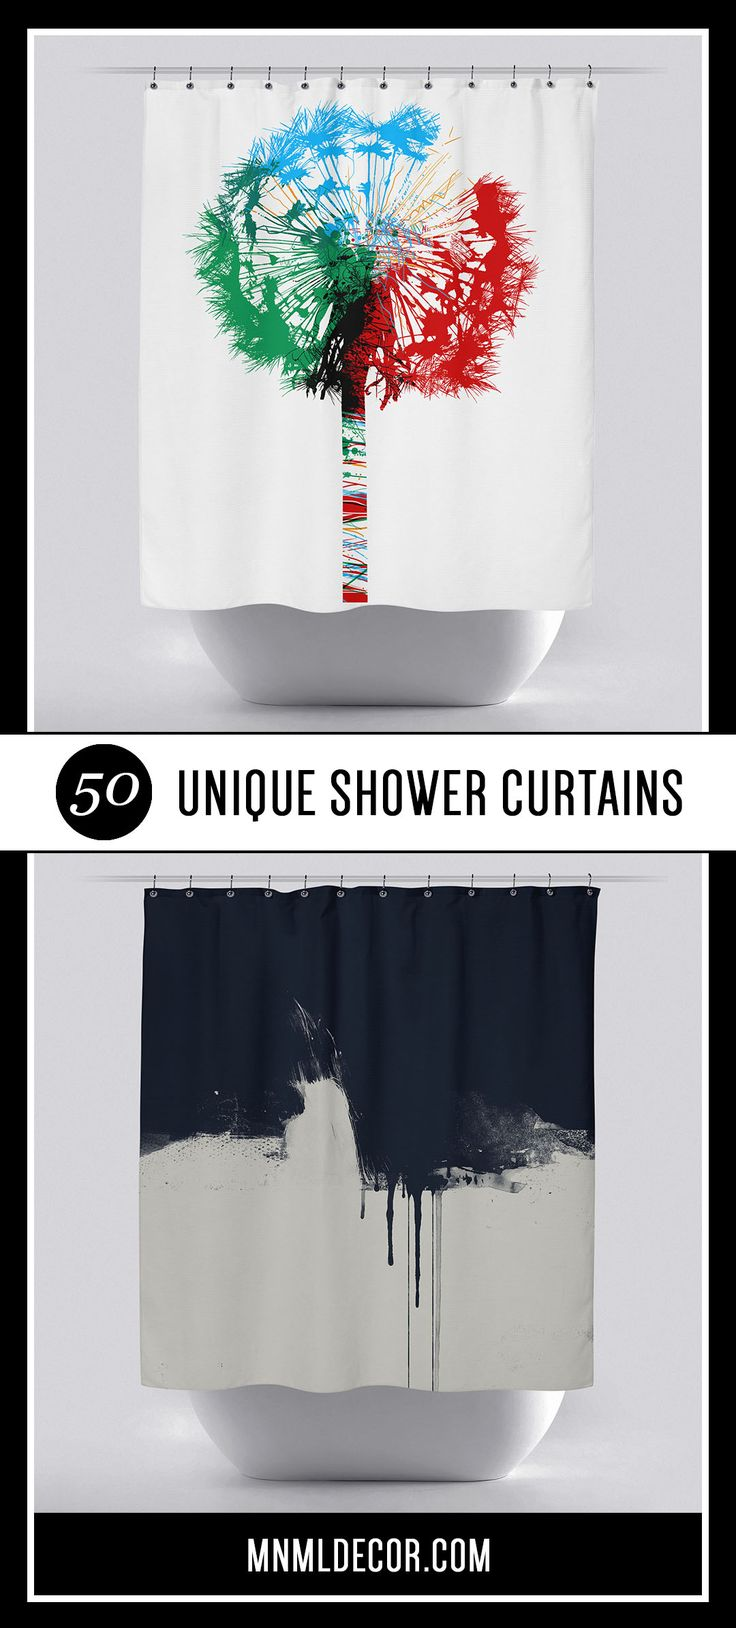 Check out our list of 50 cool & unique shower curtains at mnmldecor.com